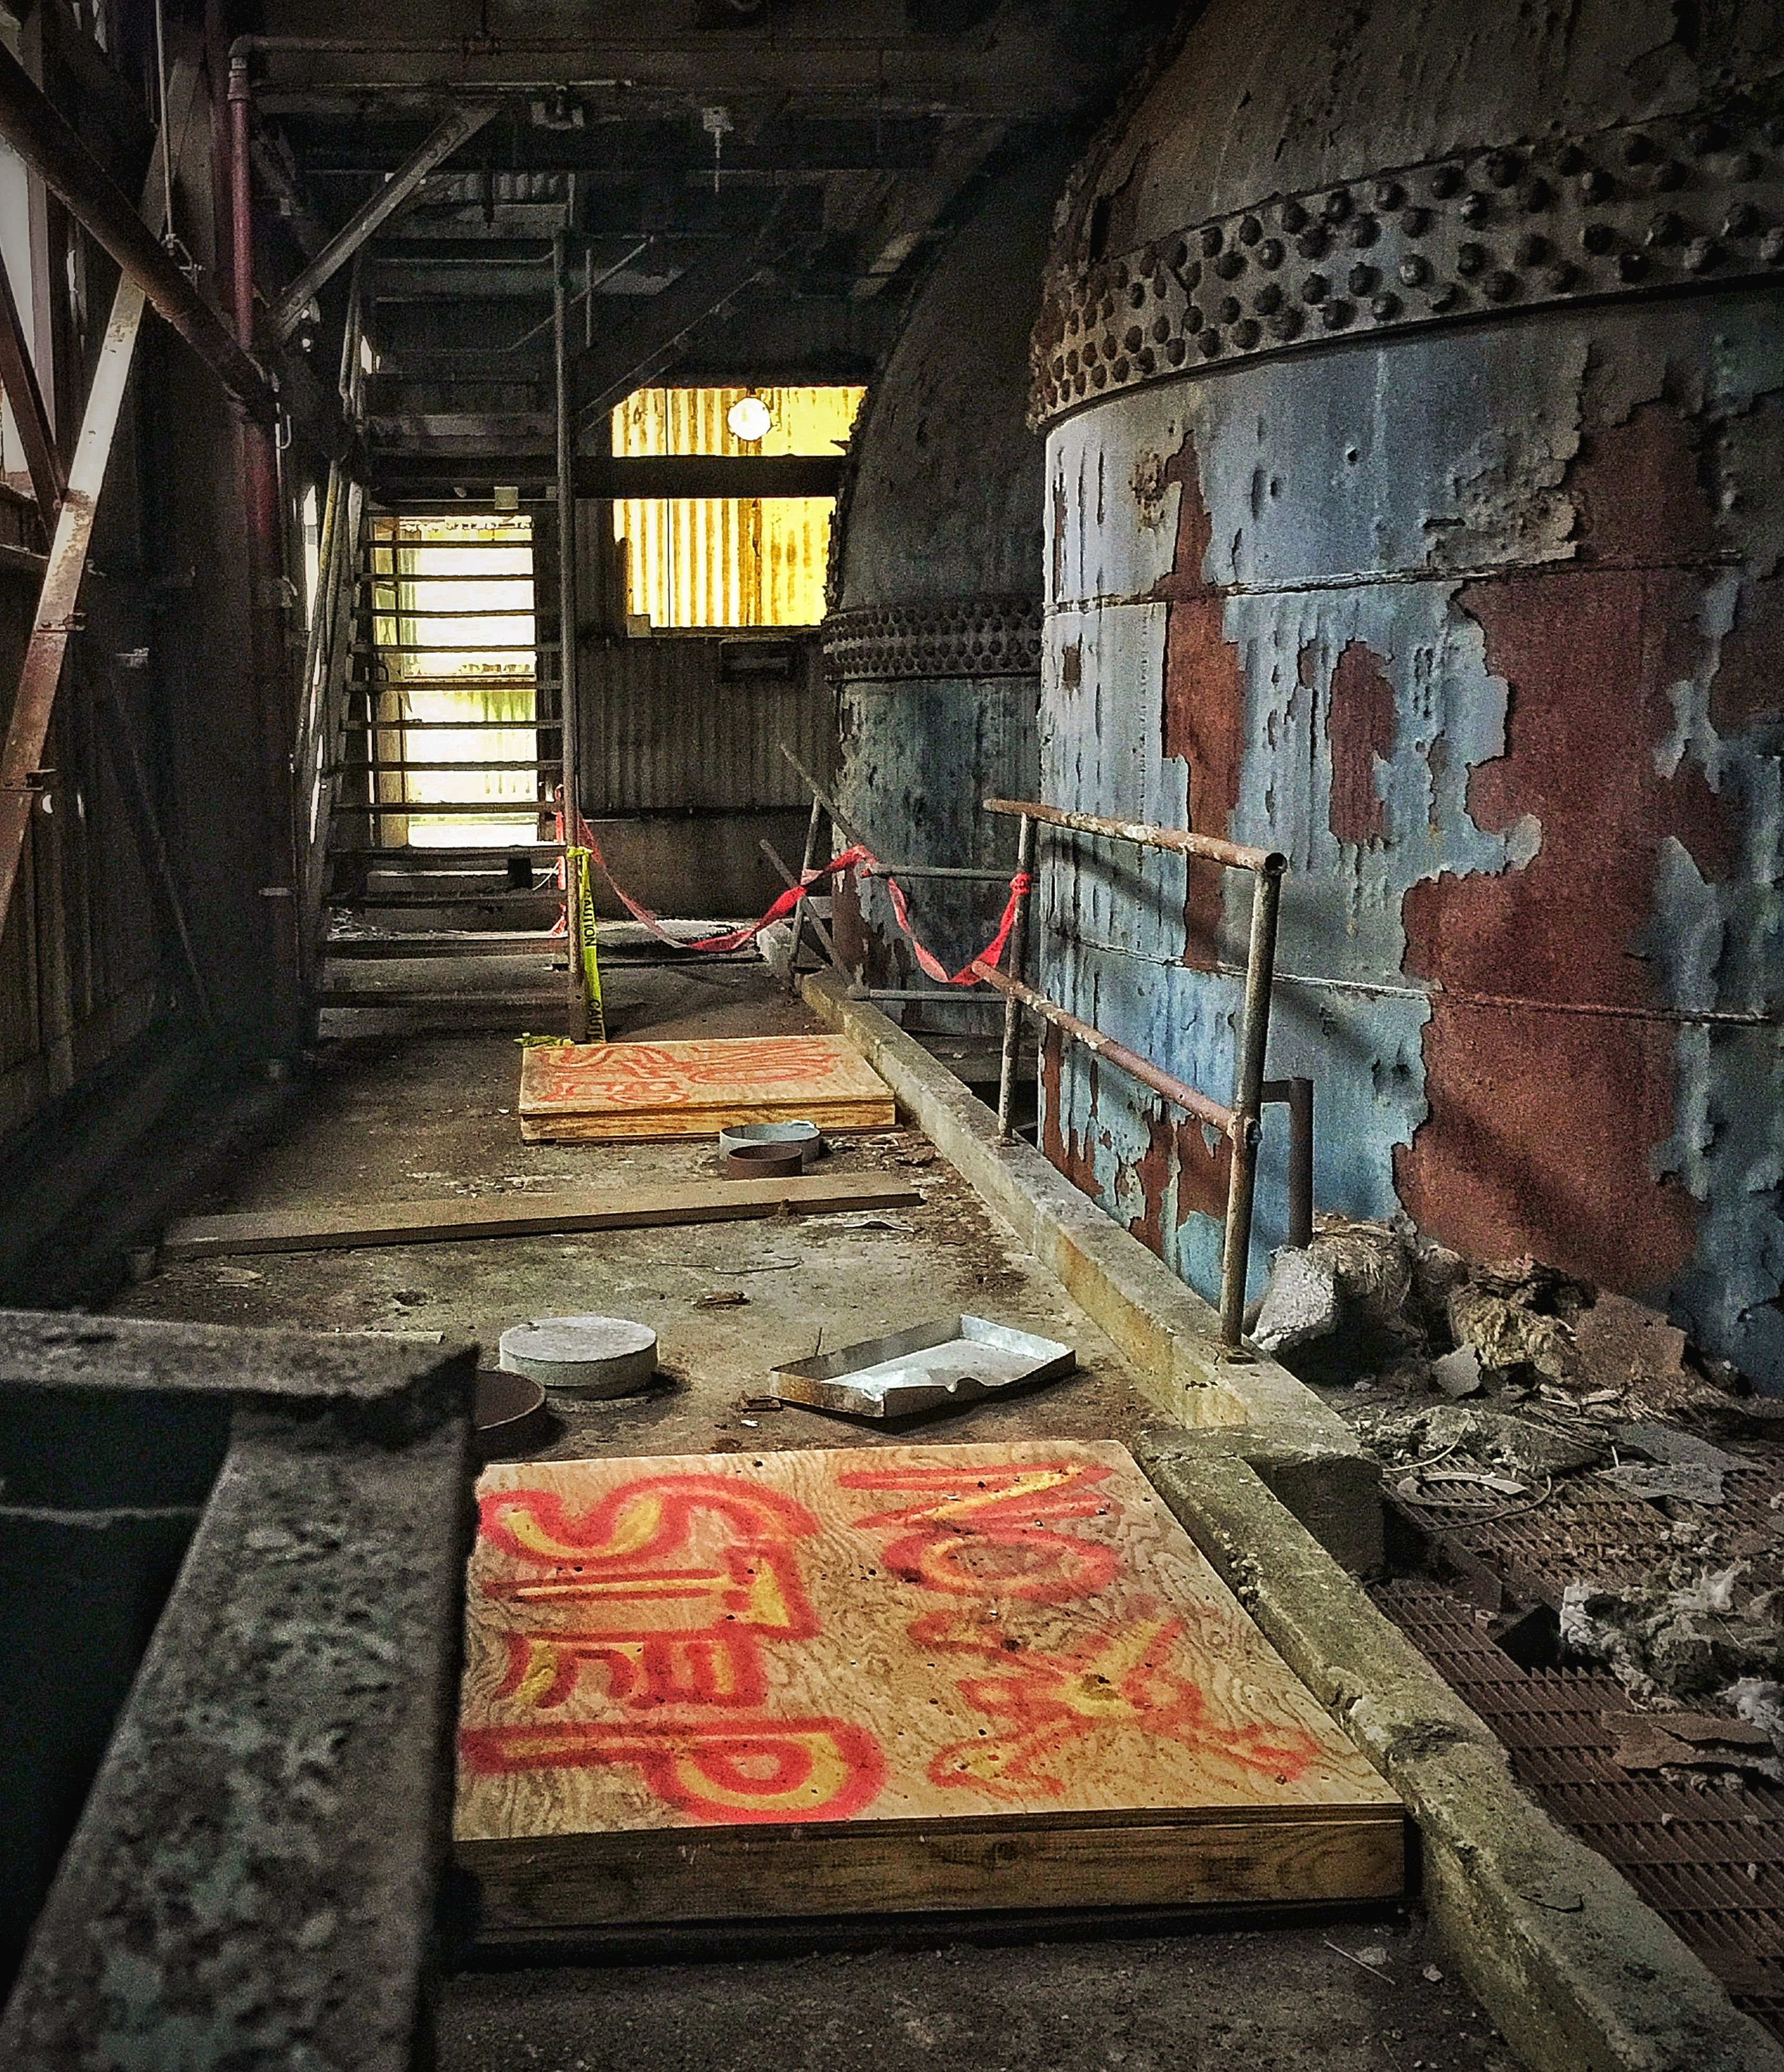 architecture, built structure, graffiti, steps, abandoned, building exterior, indoors, wall - building feature, staircase, day, full length, steps and staircases, railing, brick wall, damaged, metal, obsolete, red, house